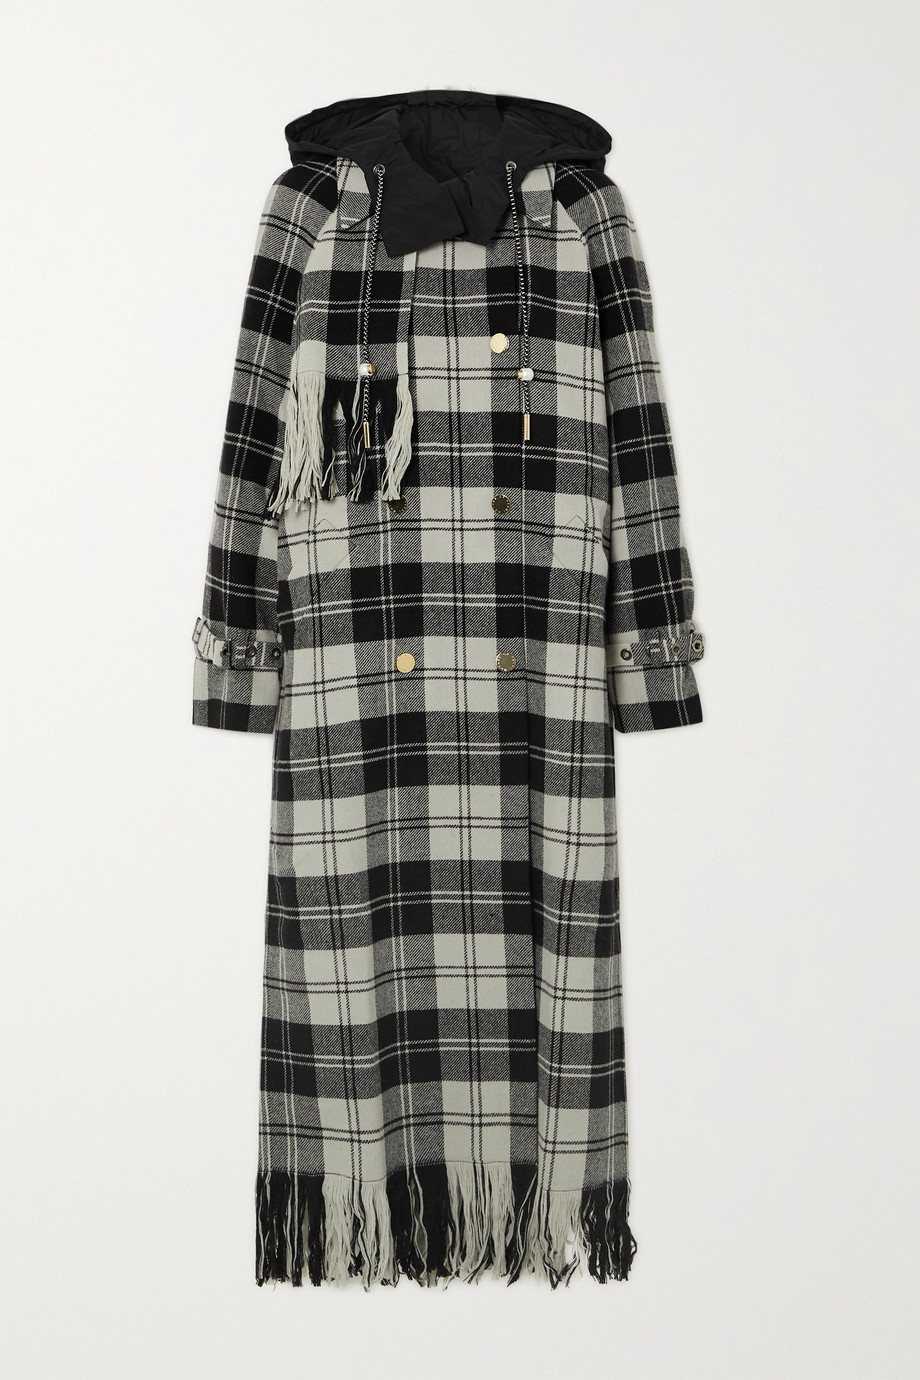 Mother of Pearl Spencer hooded fringed checked wool coat